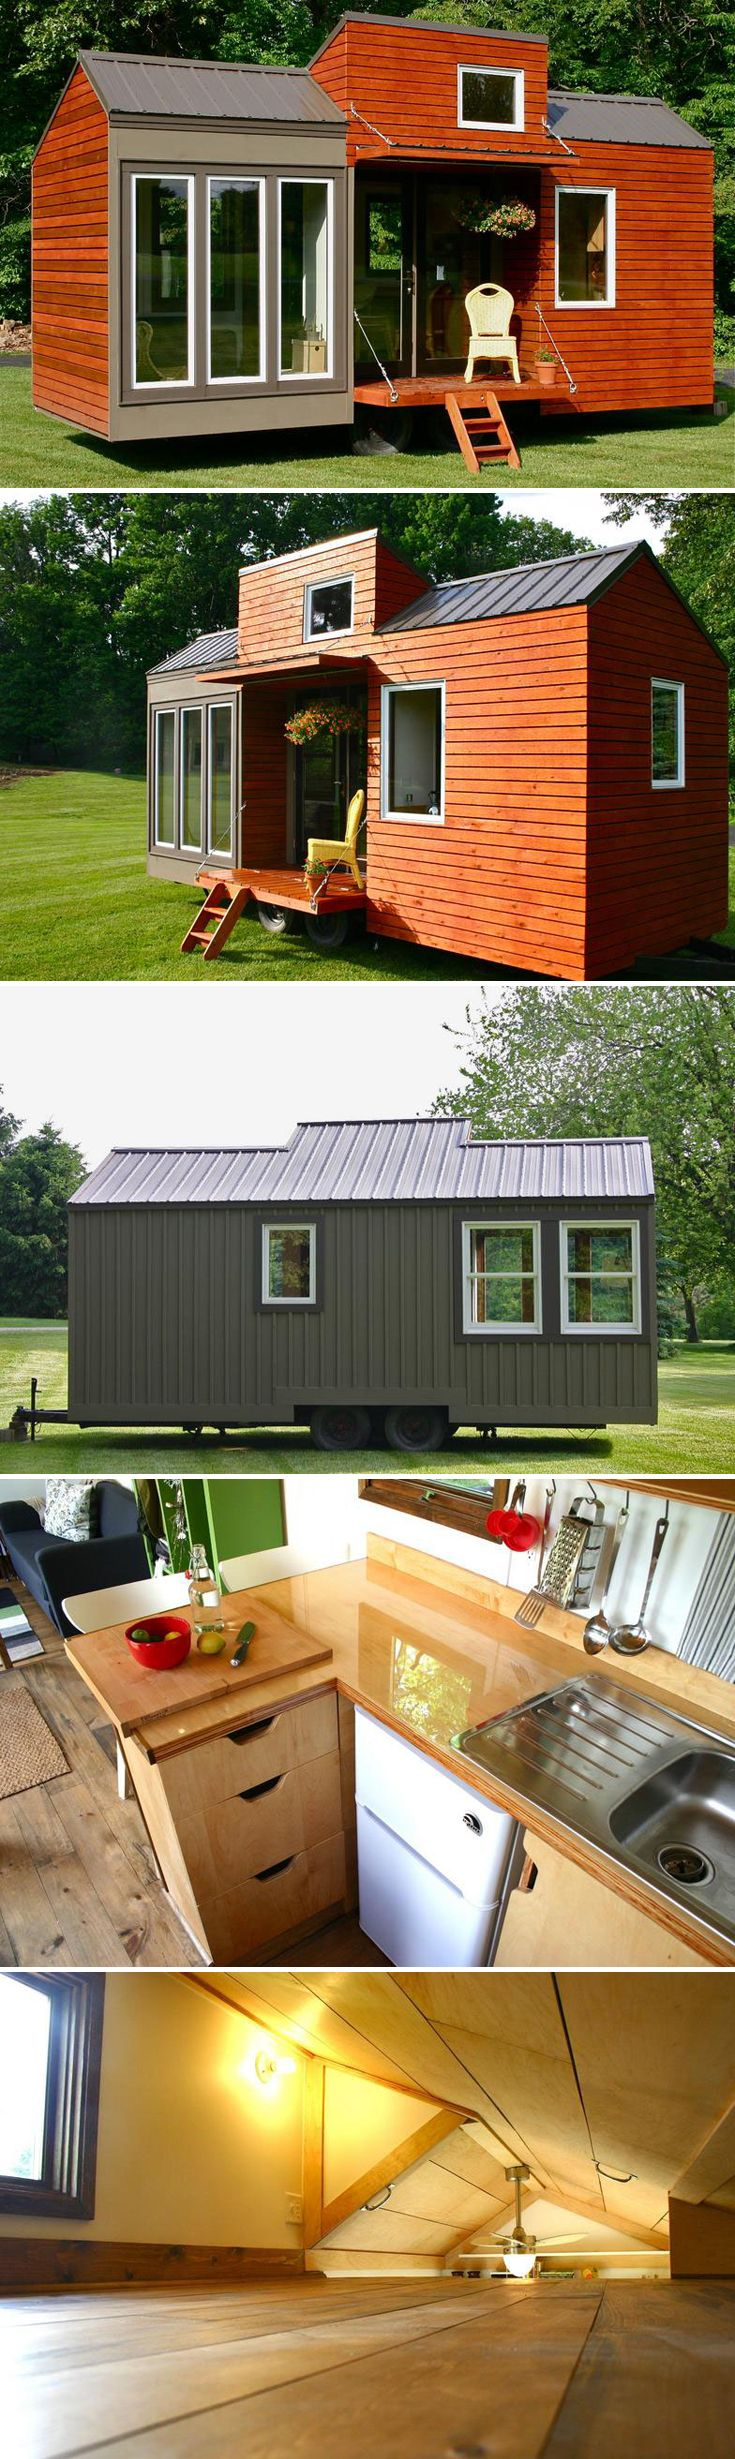 409 best tiny houses images on pinterest | small homes, tiny homes